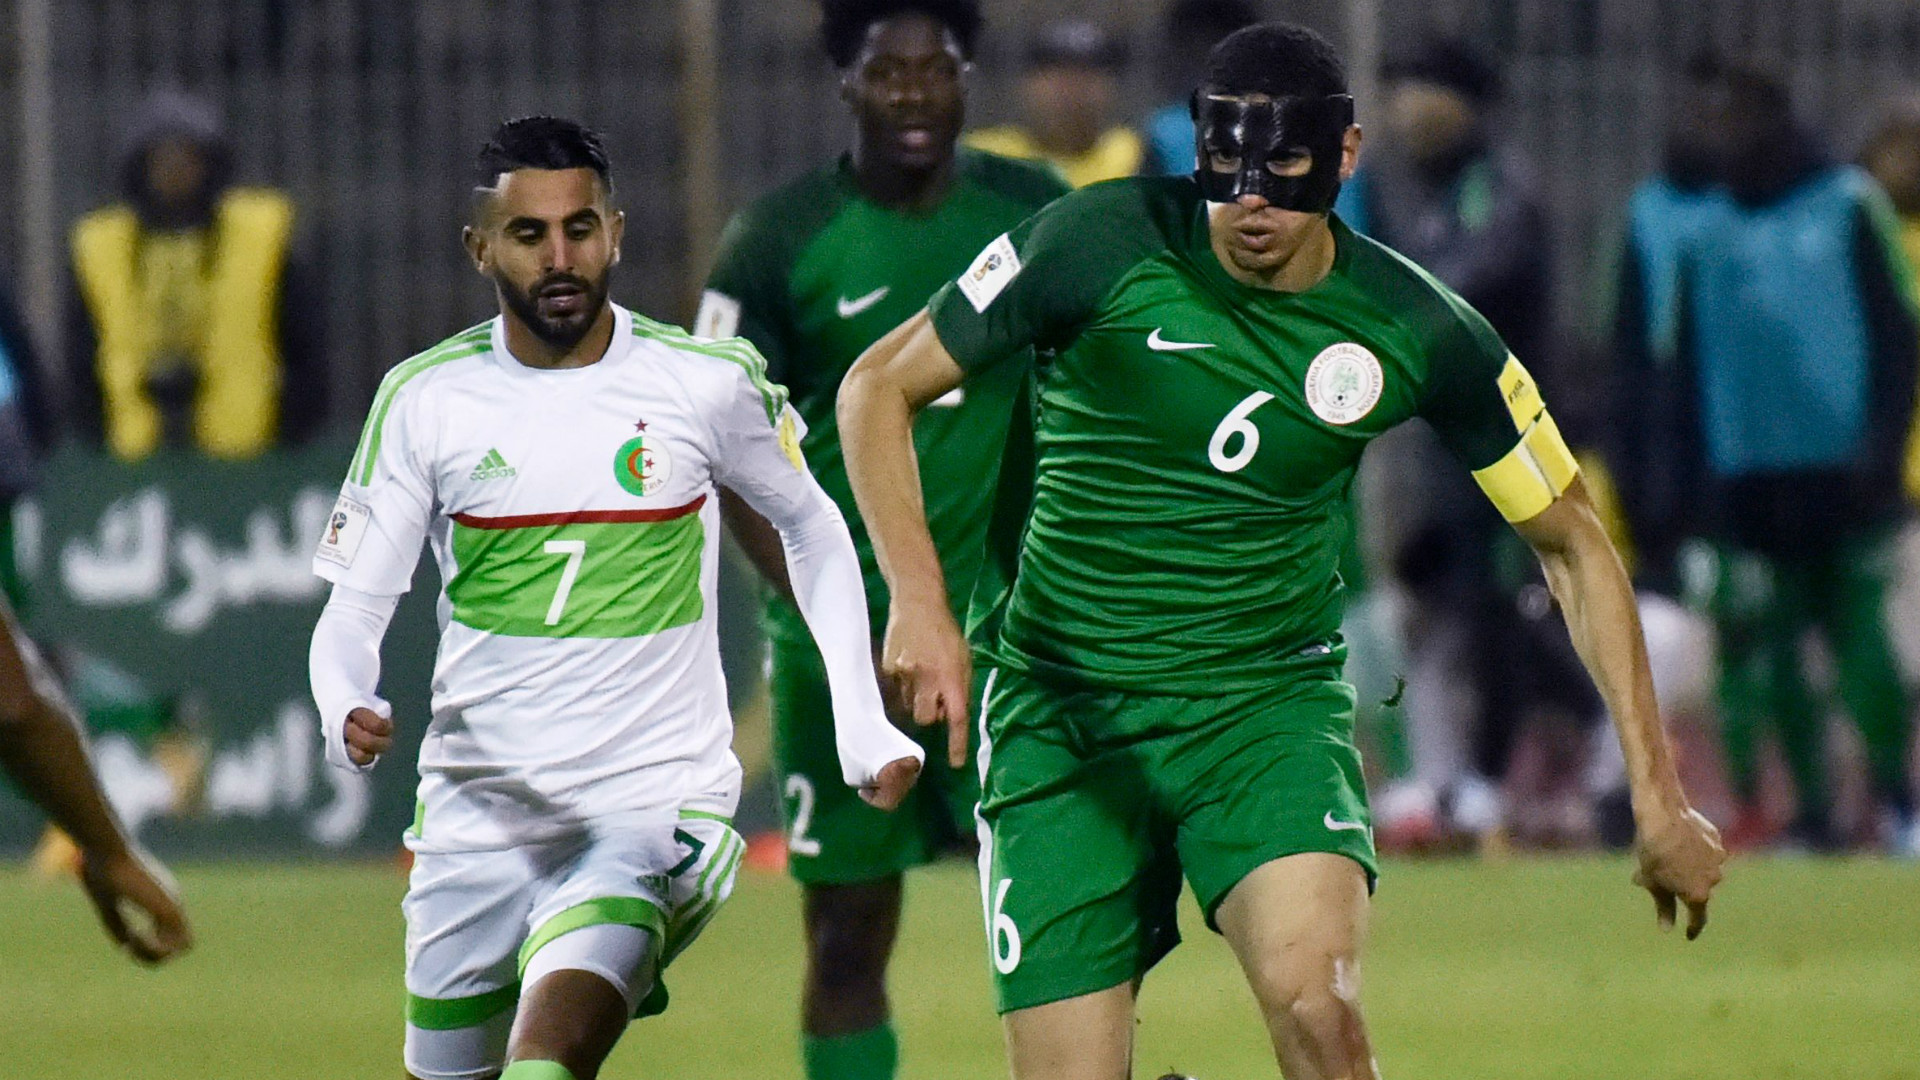 Nigeria on revenge mission against Argentina